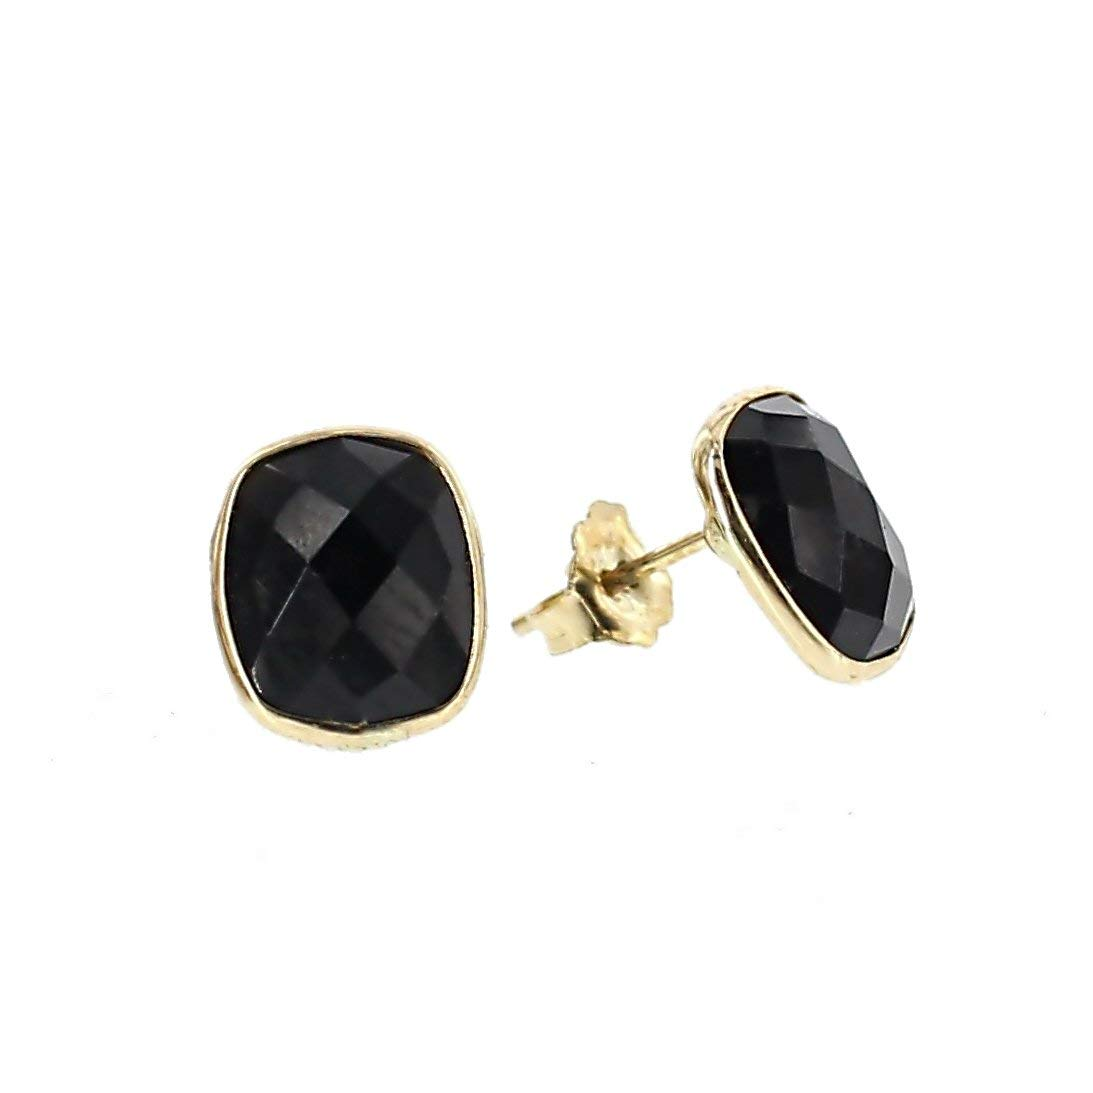 Get Quotations 14k Yellow Gold Stud Earrings With Cushion Cut Black Onyx Gemstones